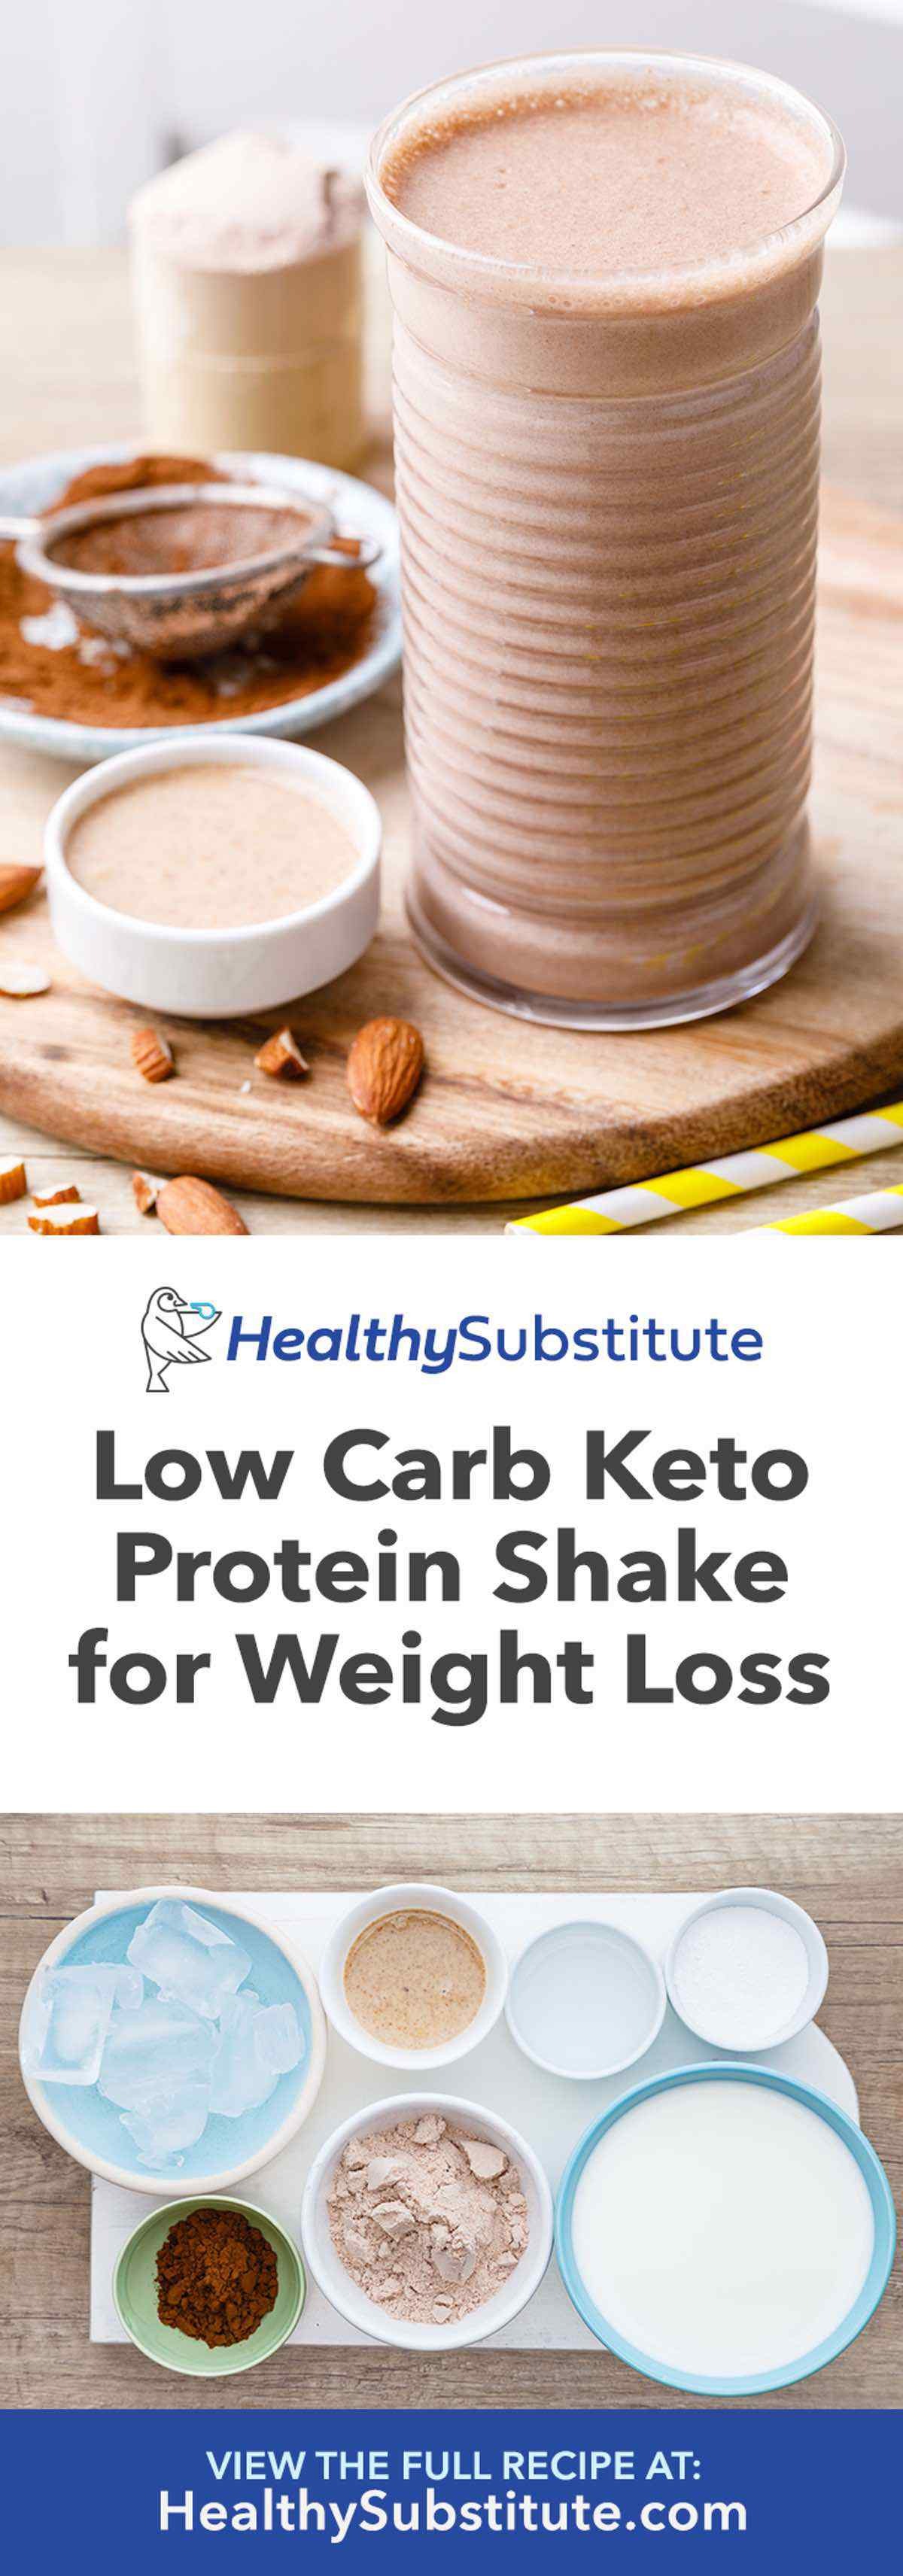 Low Carb Keto Protein Shake for Weight Loss